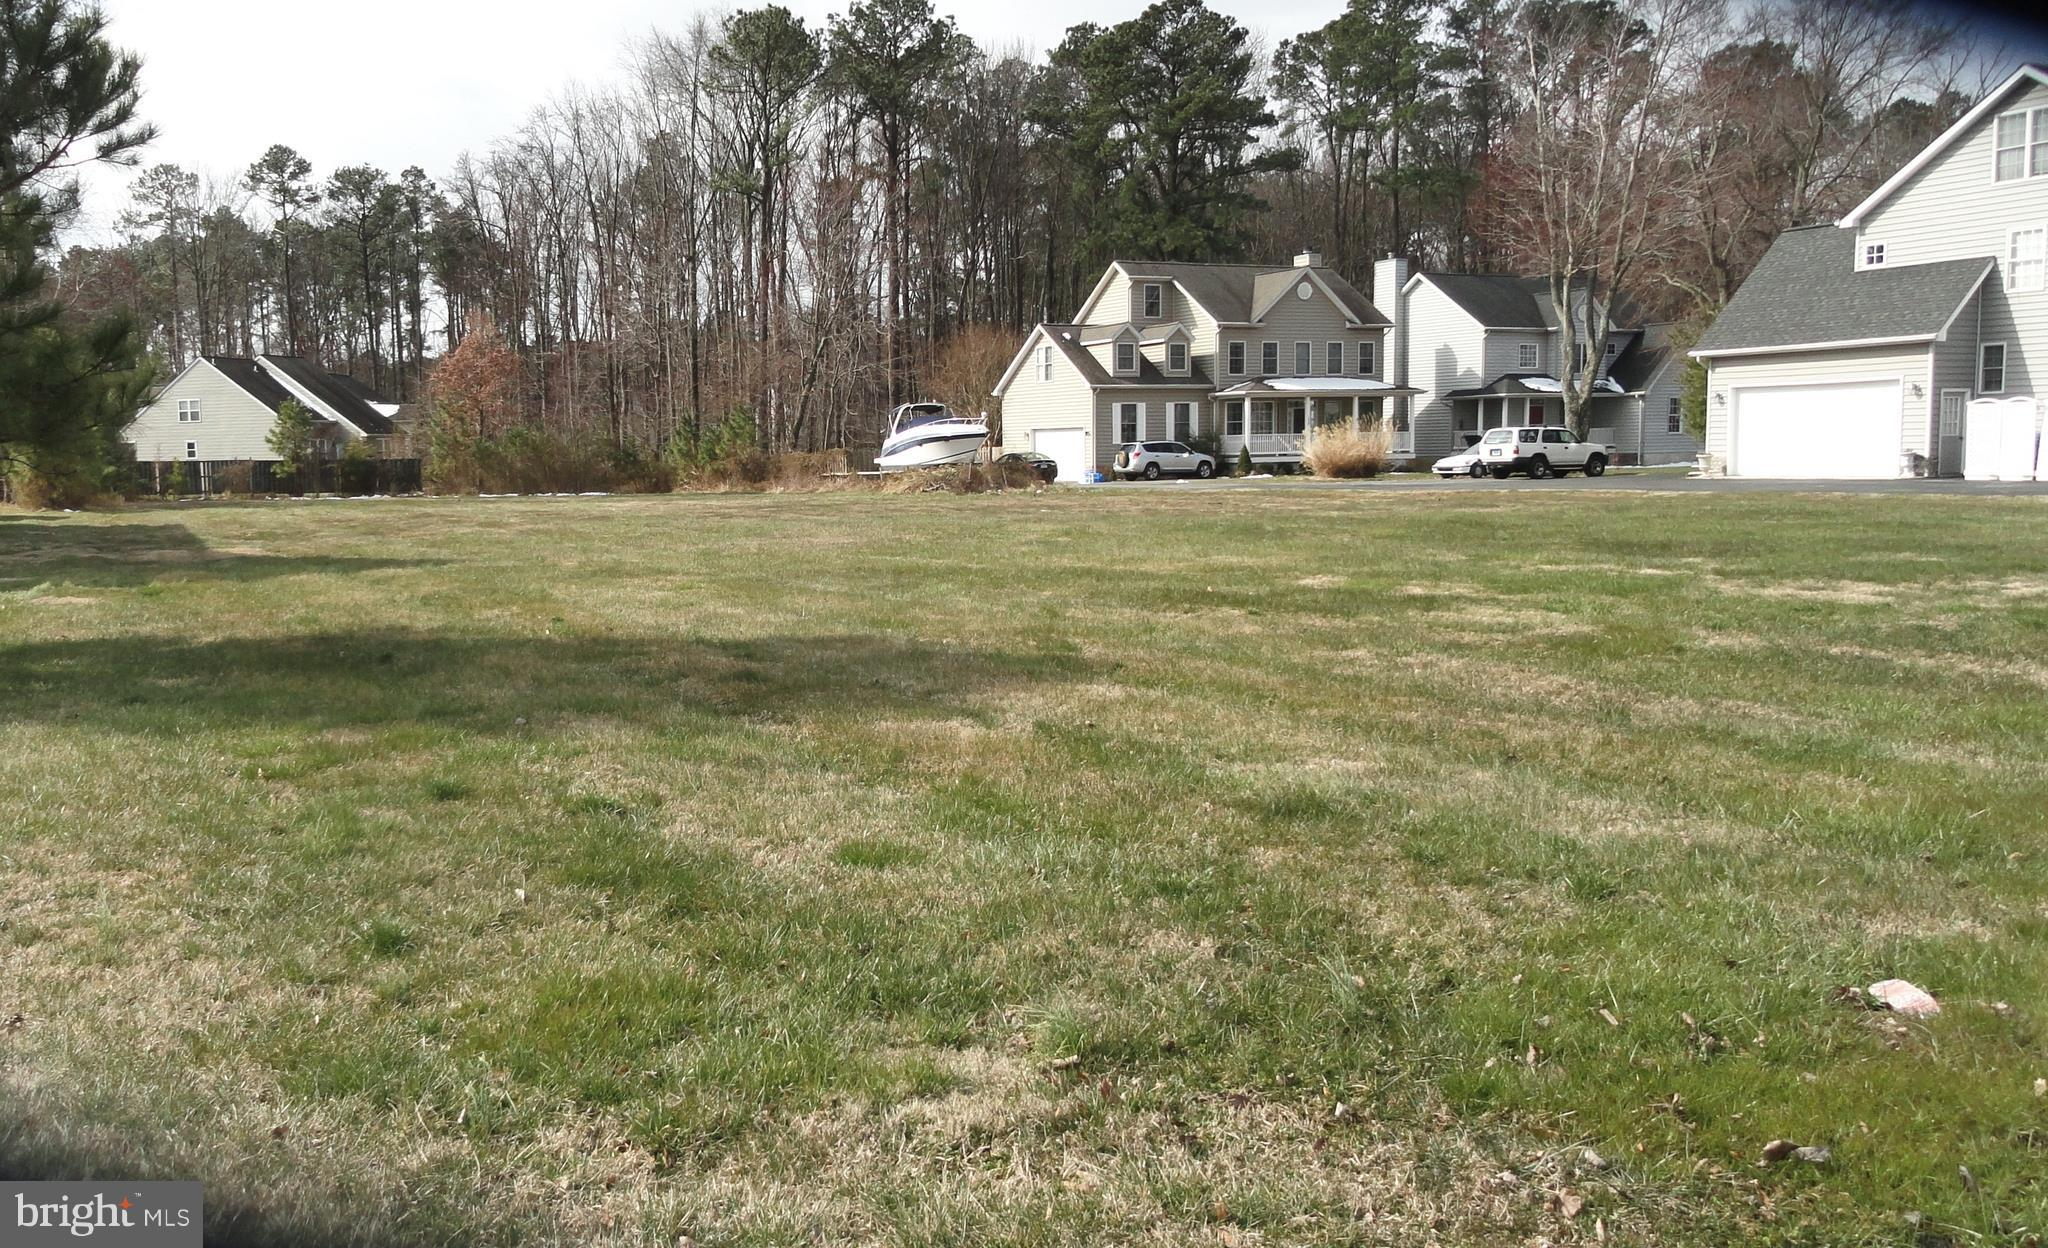 POSTAL ROAD, CHESTER, MD 21619